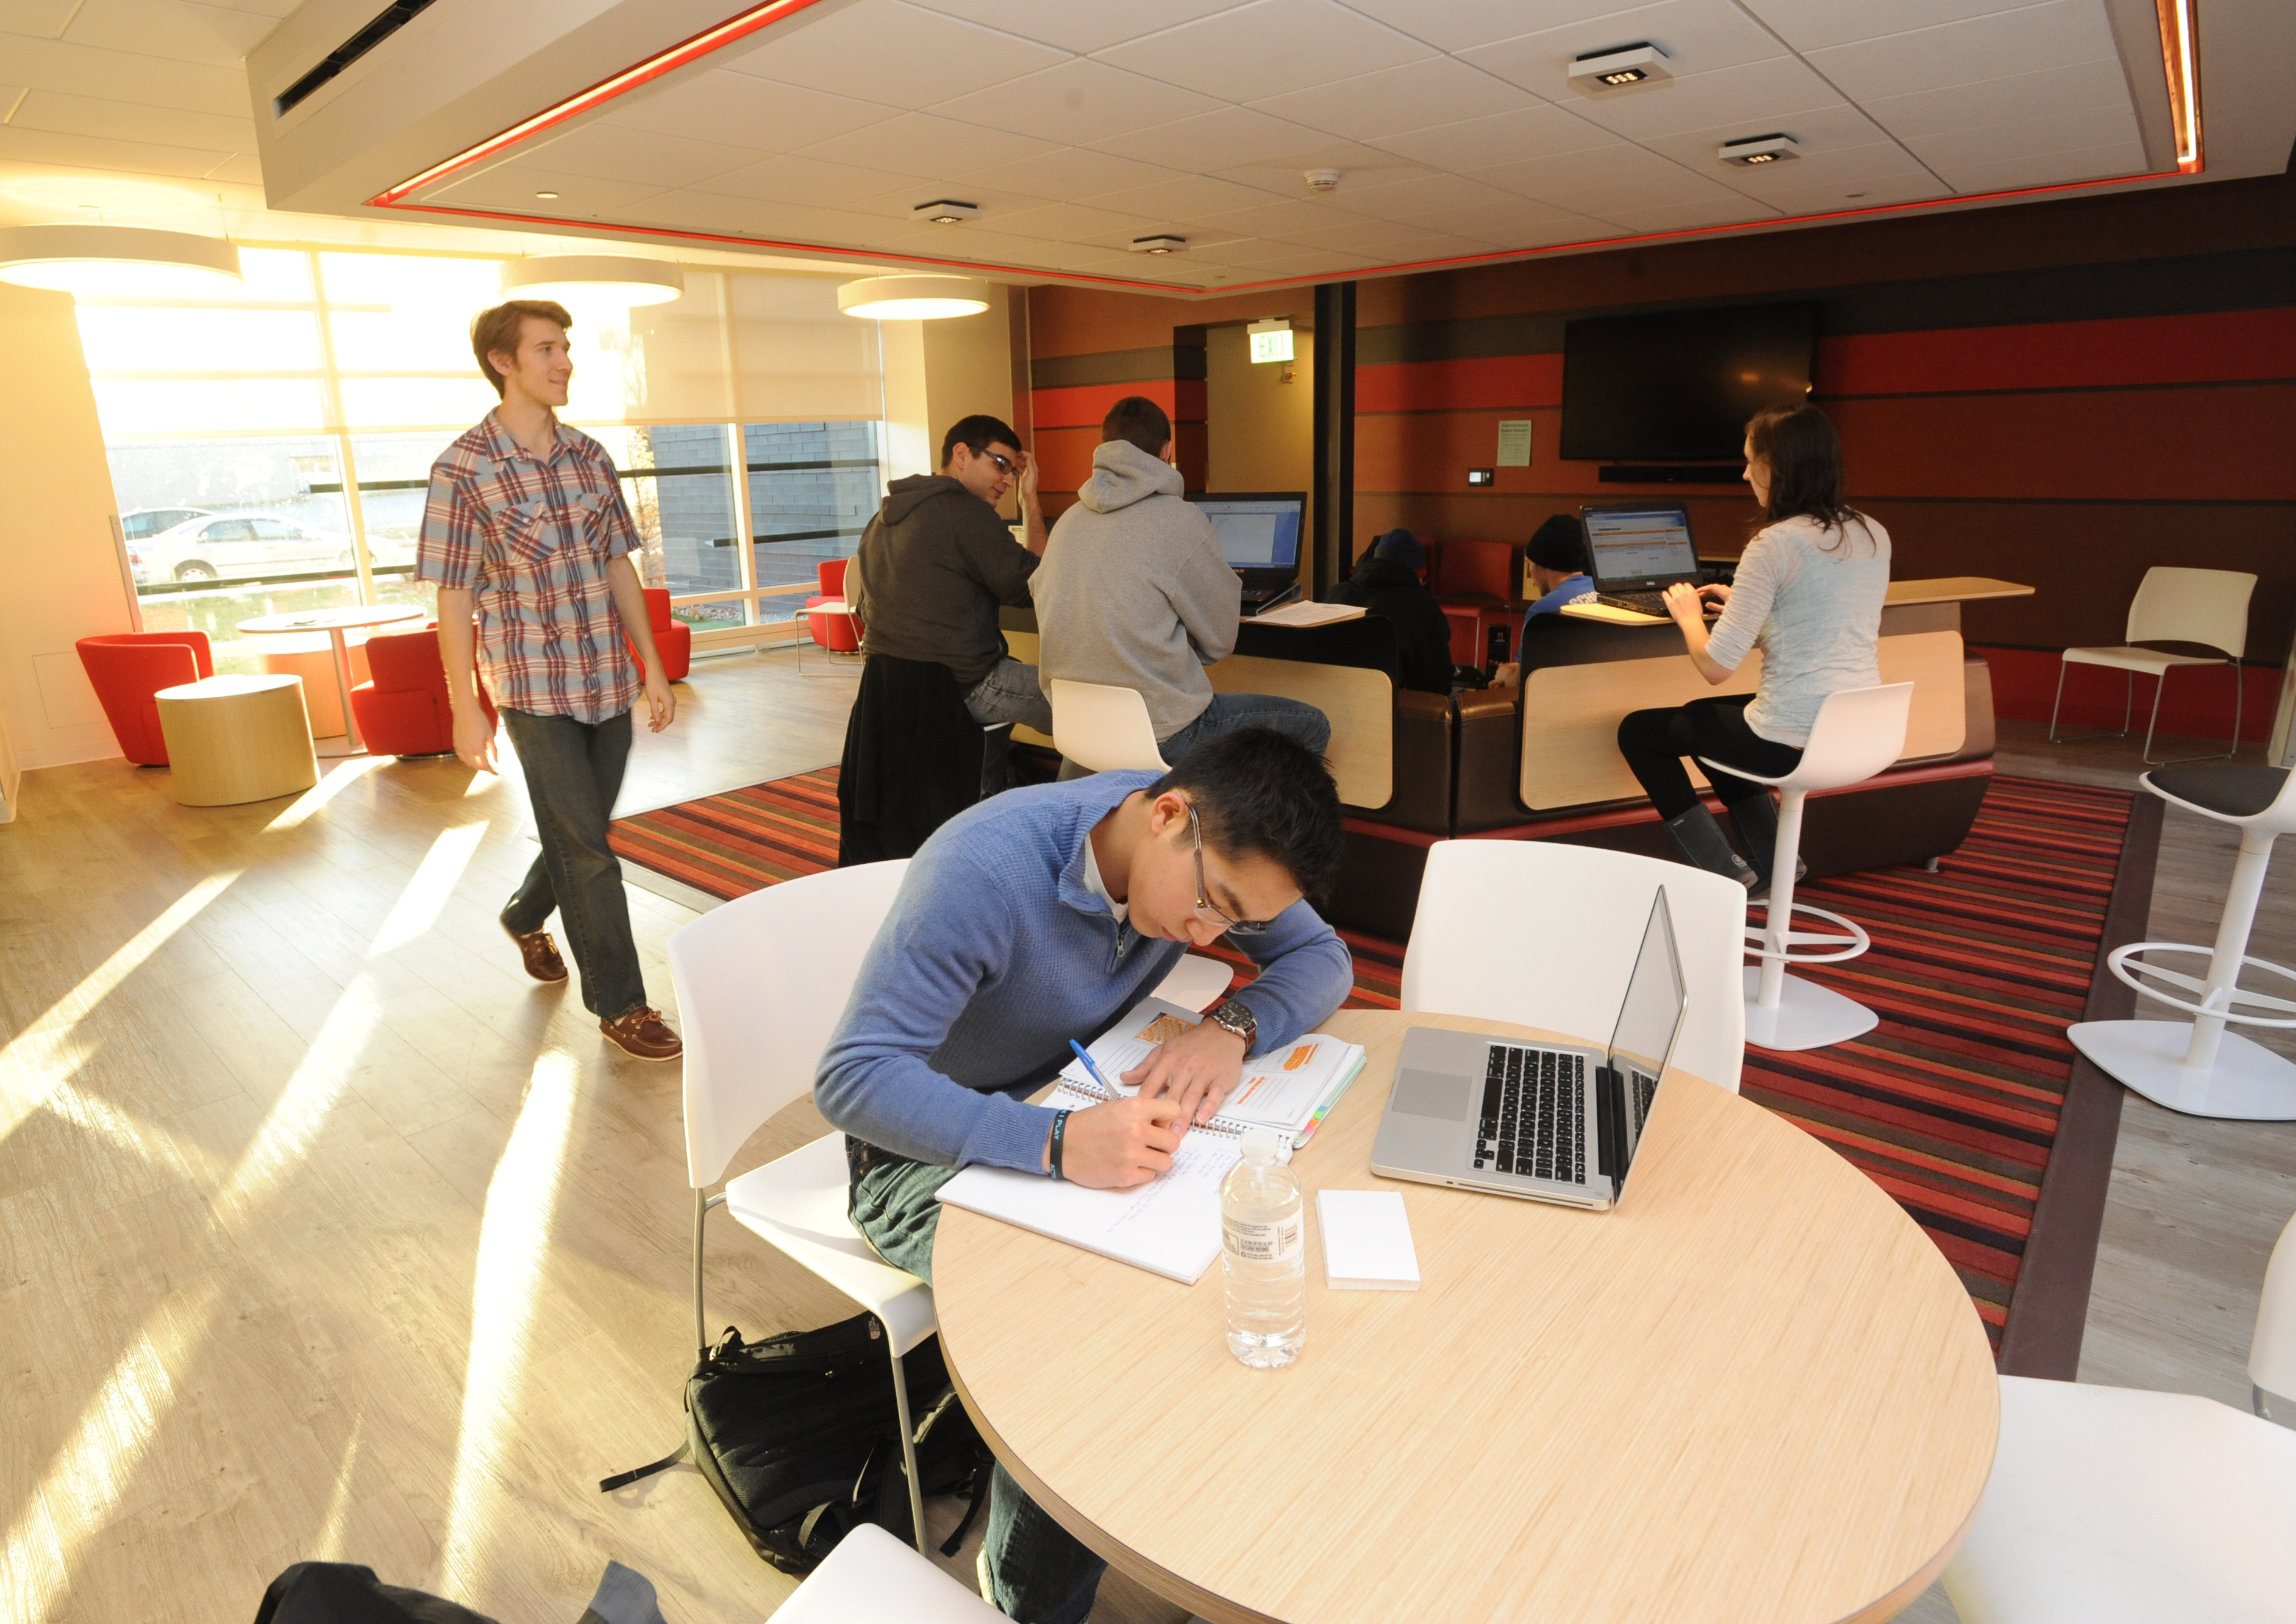 Students work at tables and at bars in sunny common area at University Suites